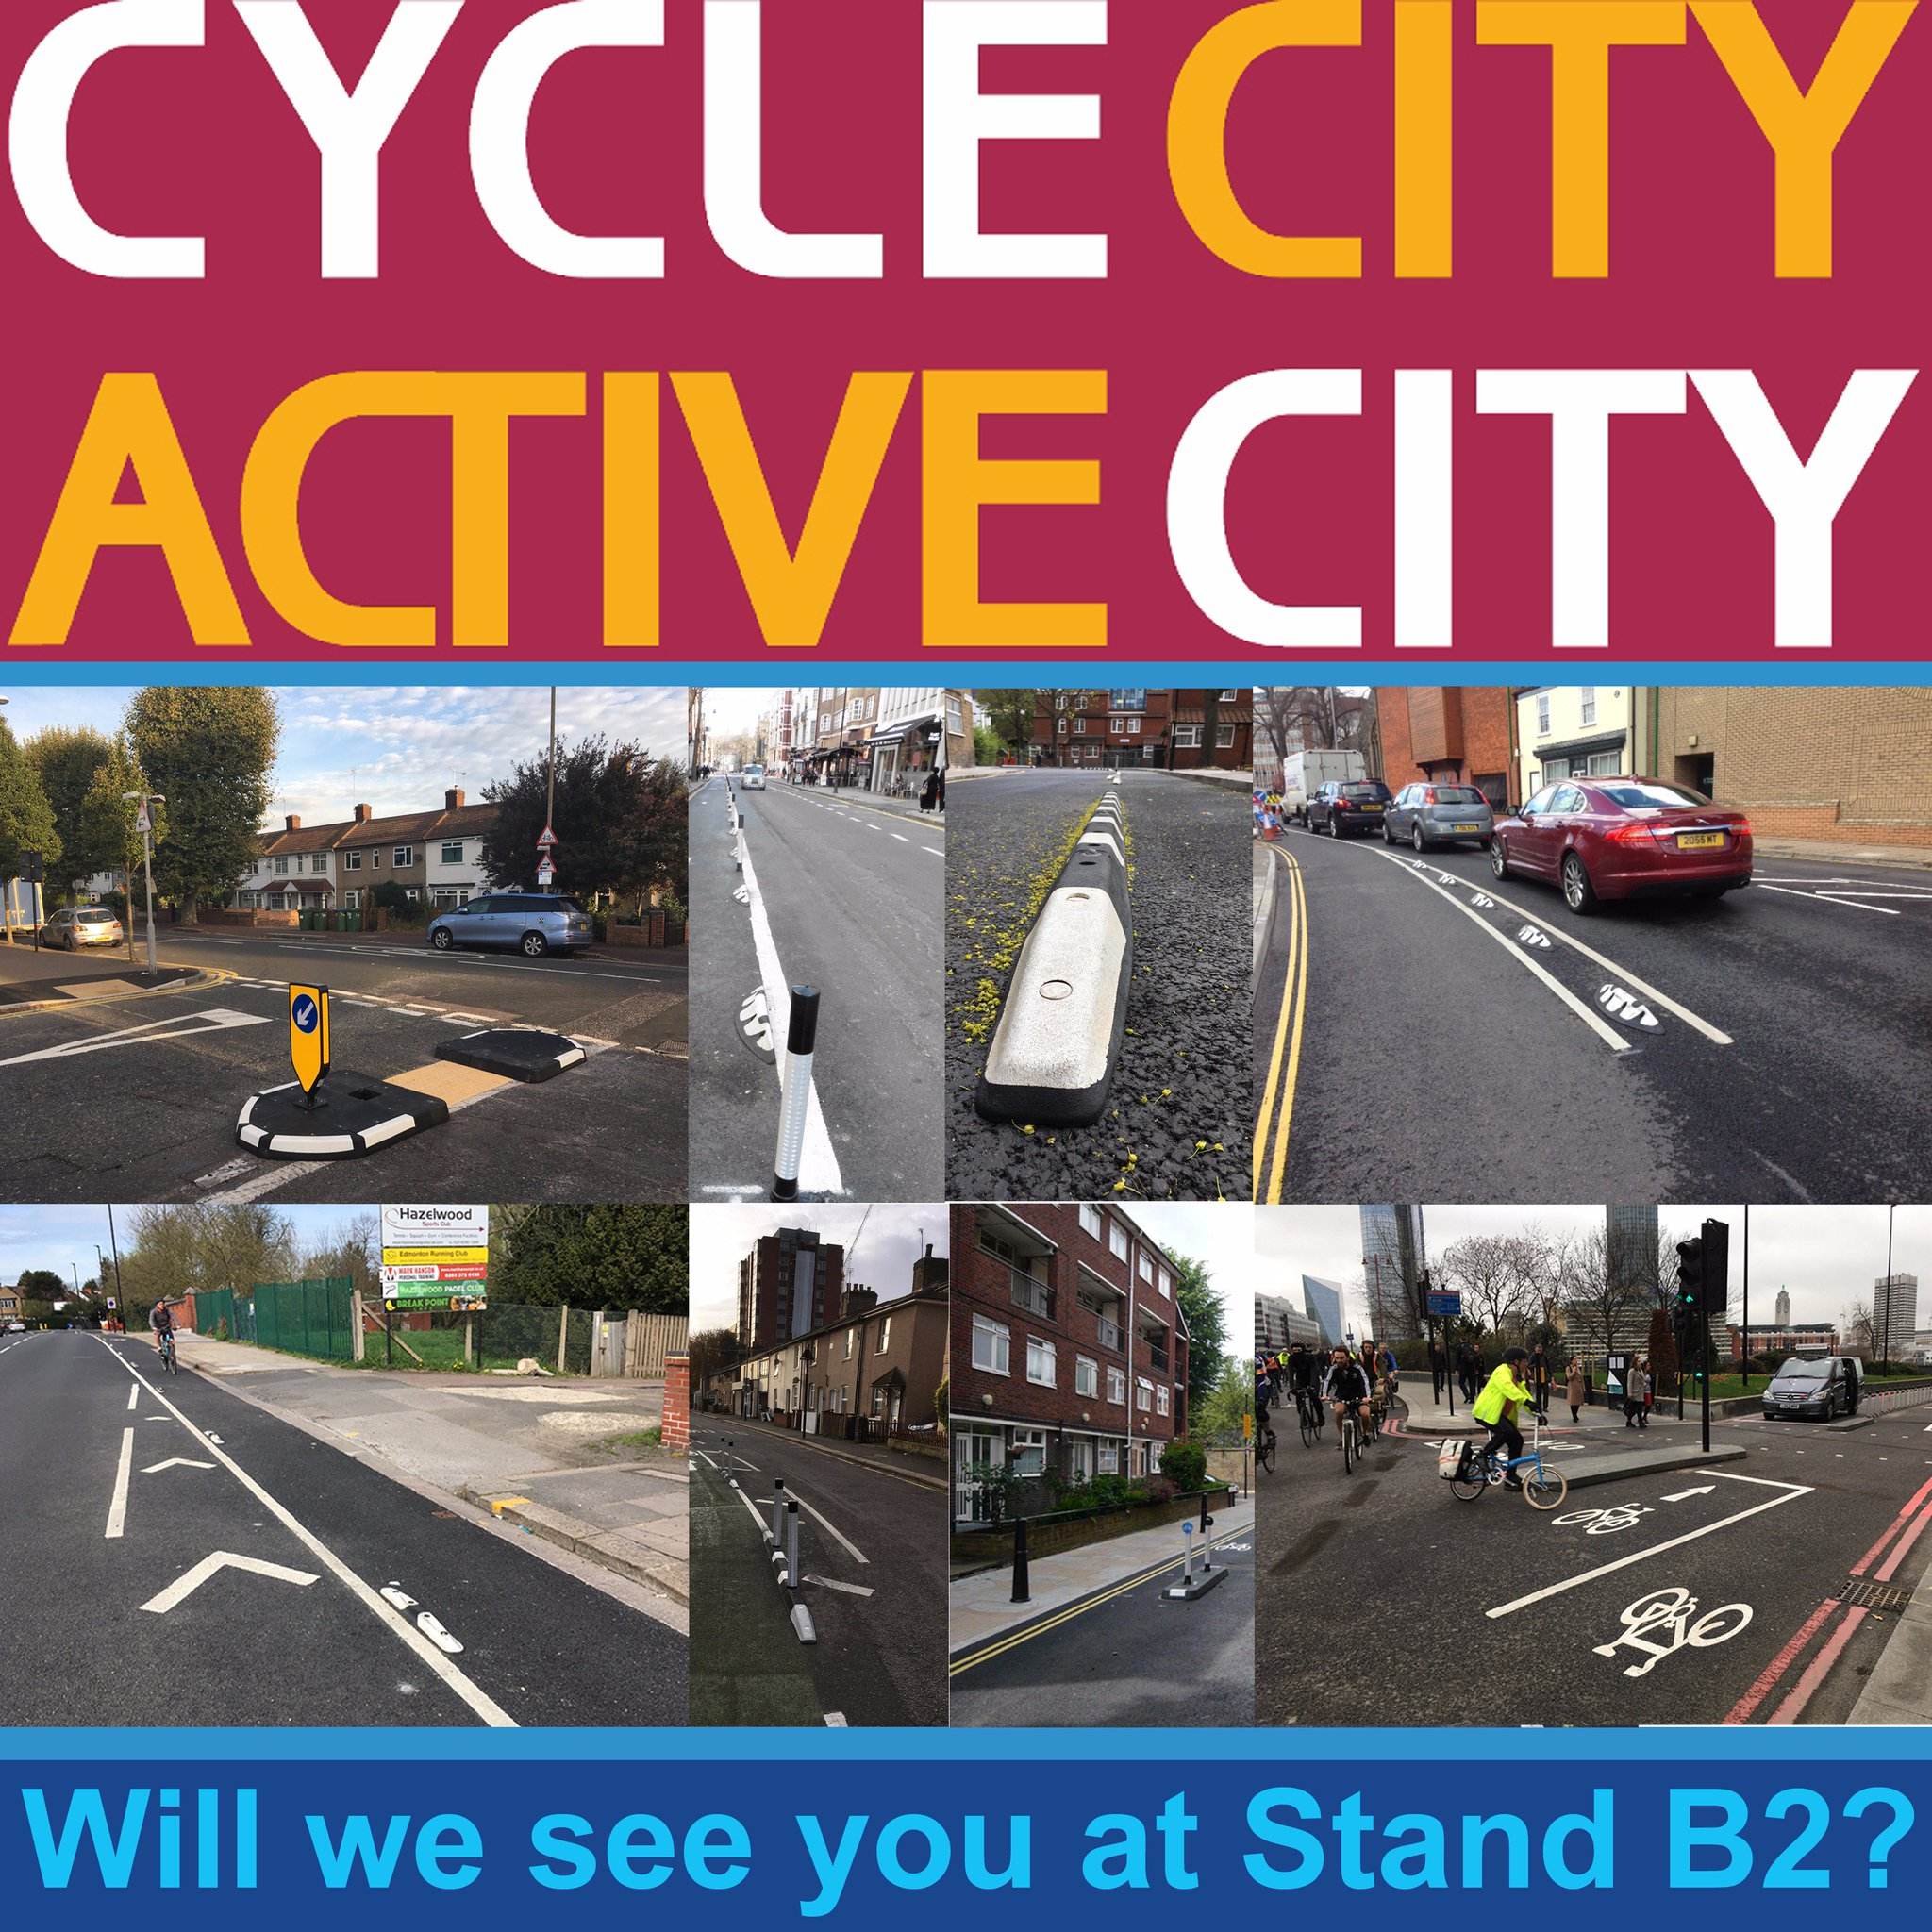 Cycle City starts on Thursday in Bradford, a showcase of cycle innovation.  Will we see you at Stand B2? #cycleactivecity #rediweldcycle https://t.co/13VhlqfdG2